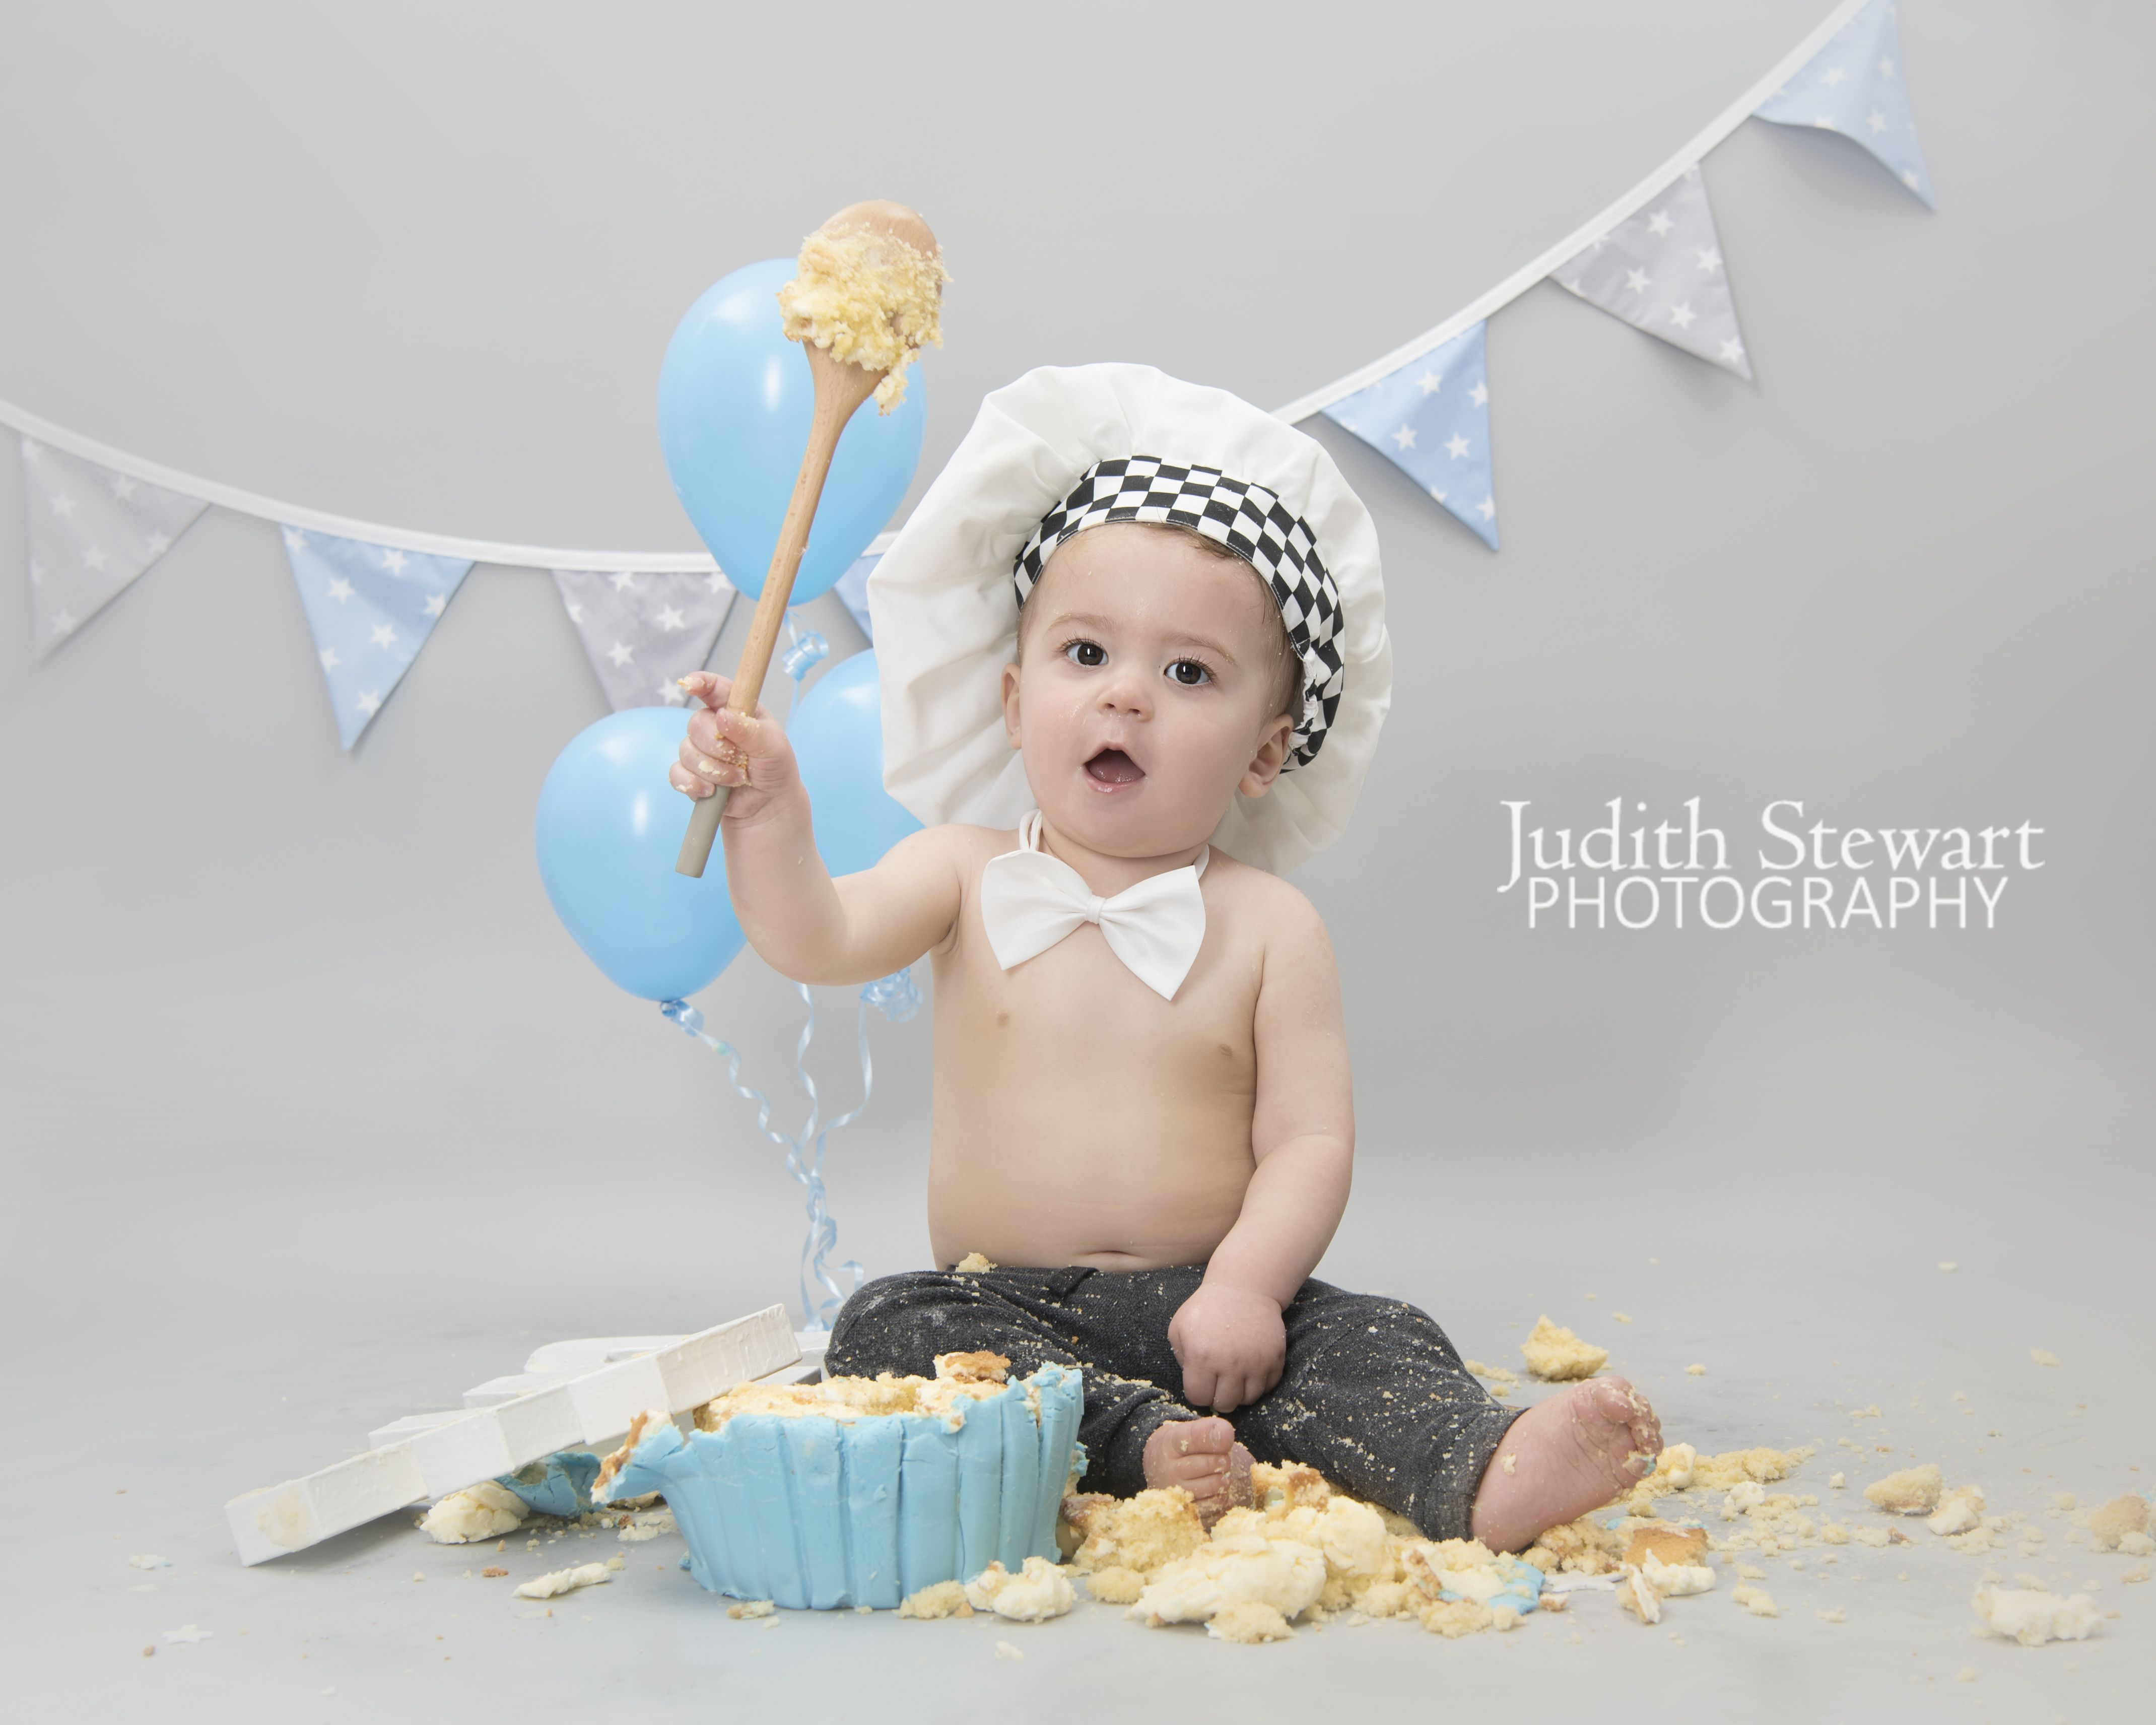 6e00458de 1st Birthday Studio Cake Smash with Judith Stewart Photography in Uckfield  East Sussex